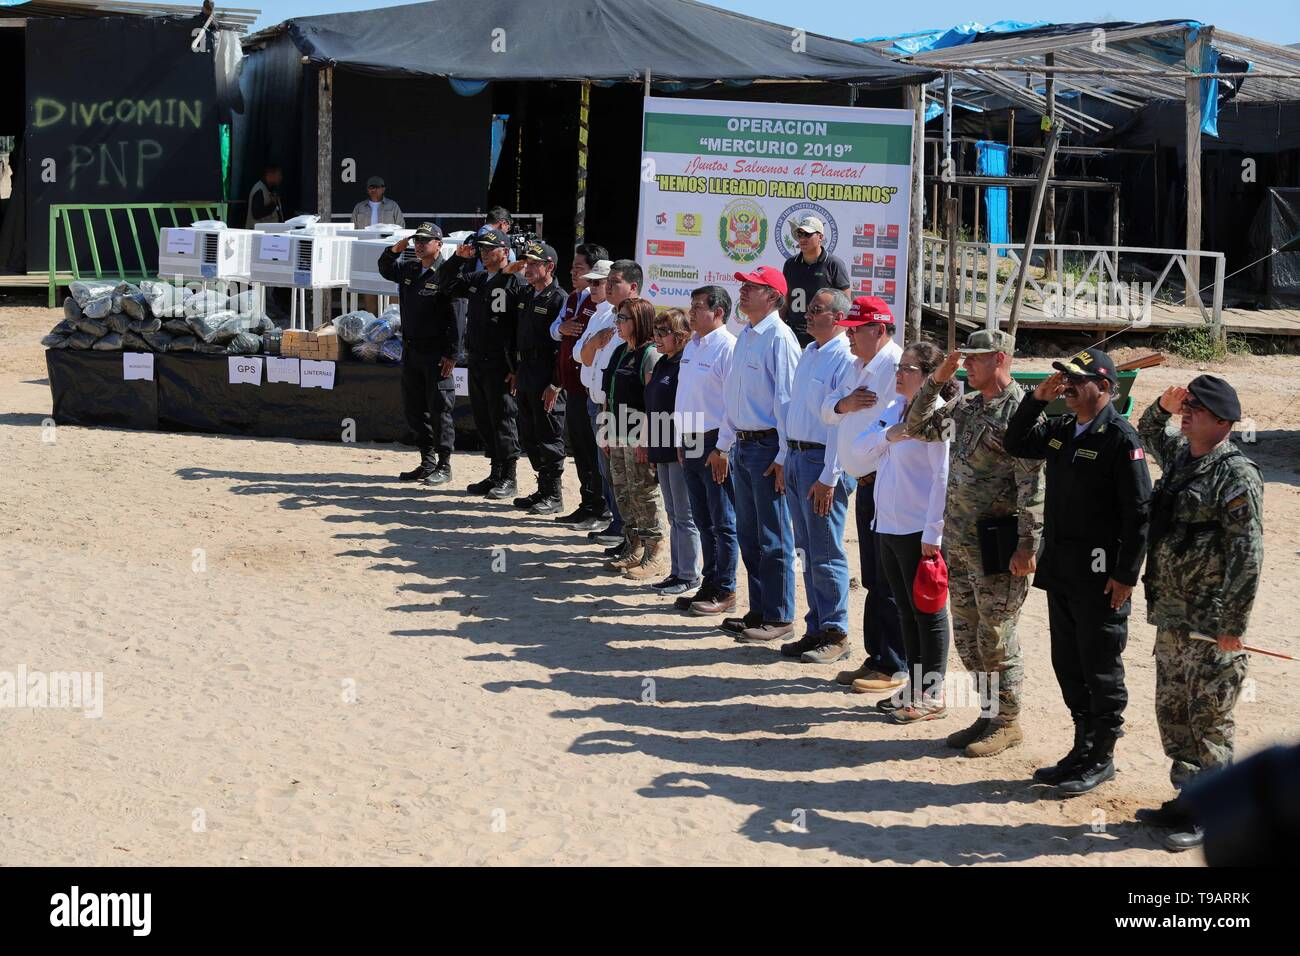 La Pampa, Peru. 17th May, 2019. The Peruvian president, Martin Vizcarra (C), accompanied by political, civil and military authorities, participates in the delivery of equipment donated by the United States to the Government of Peru to help the local police in the recovery efforts of the deforested area known as La Pampa, the largest illegal mining camp located in the southern region Amazonia of Madre de Dios, Peru, 17 May 2019. Credit: Ernesto Arias/EFE/Alamy Live News - Stock Image